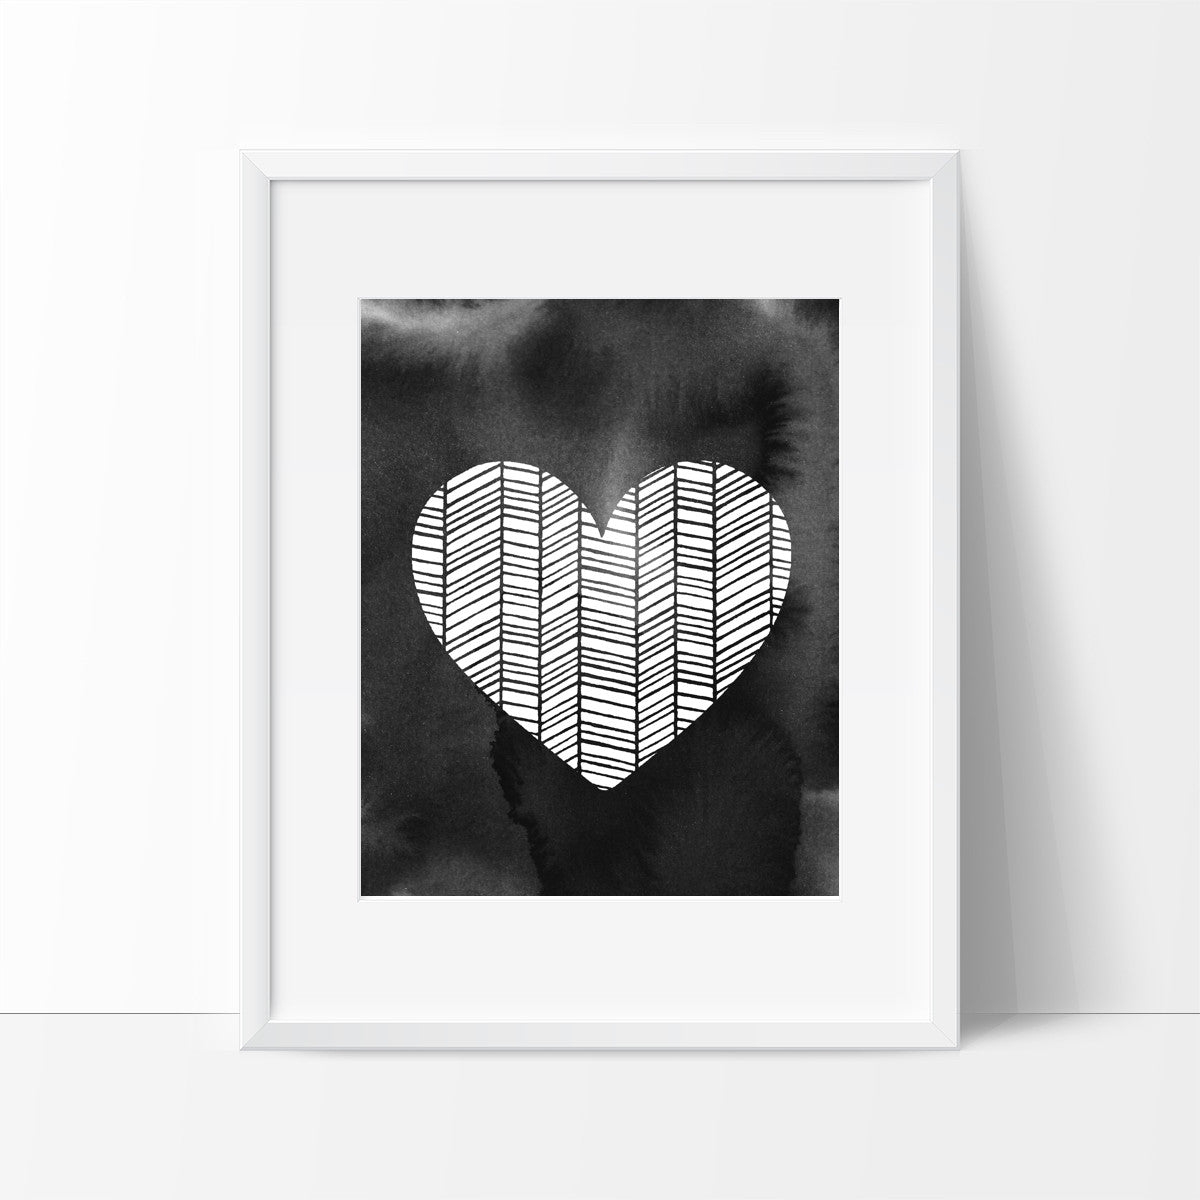 Patterned Heart with Brush Strokes in Black, Wall Decor Ideas - Ink Print Art